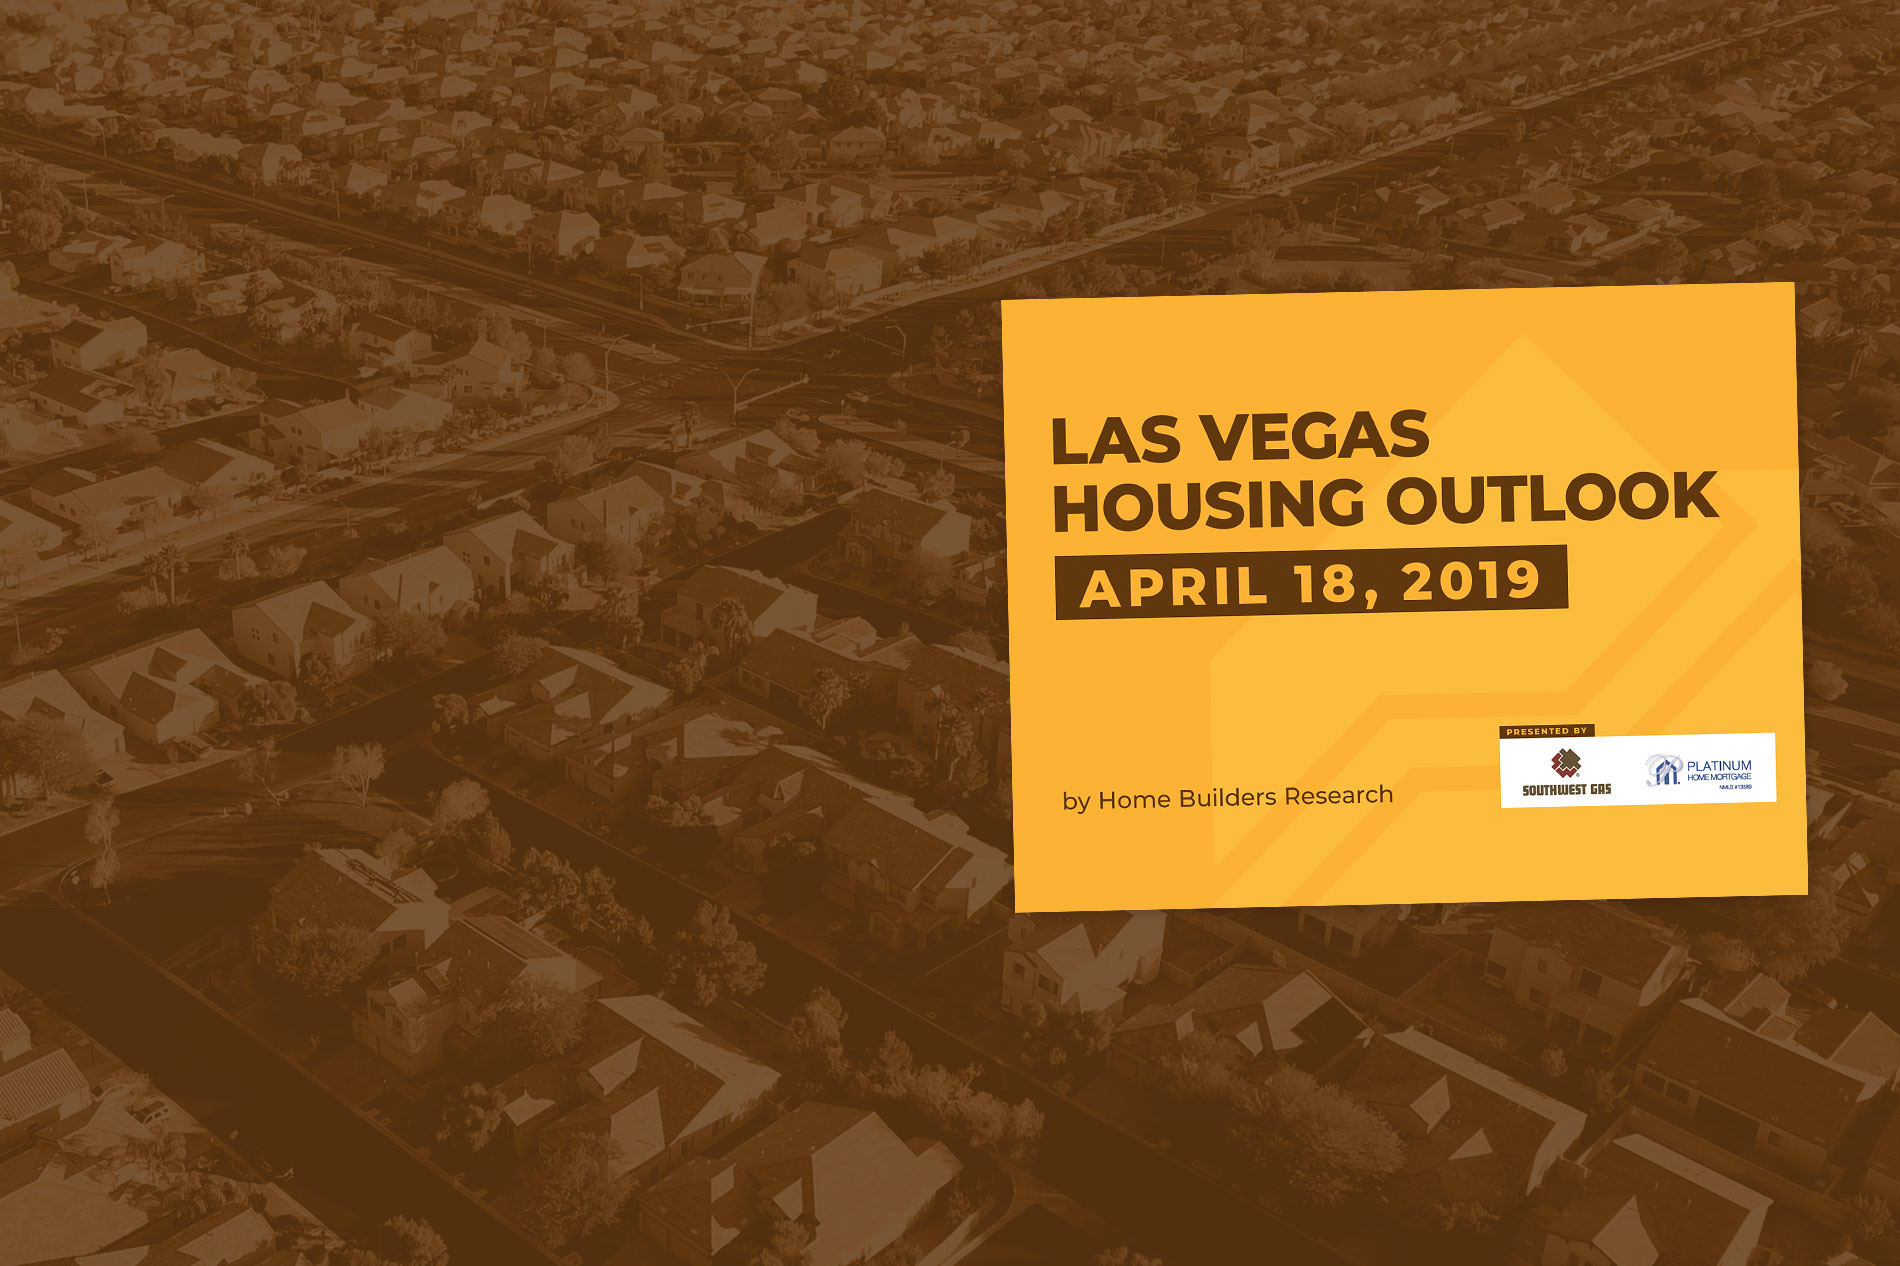 Housing Outlook 2019 Presentation Slides Now Available